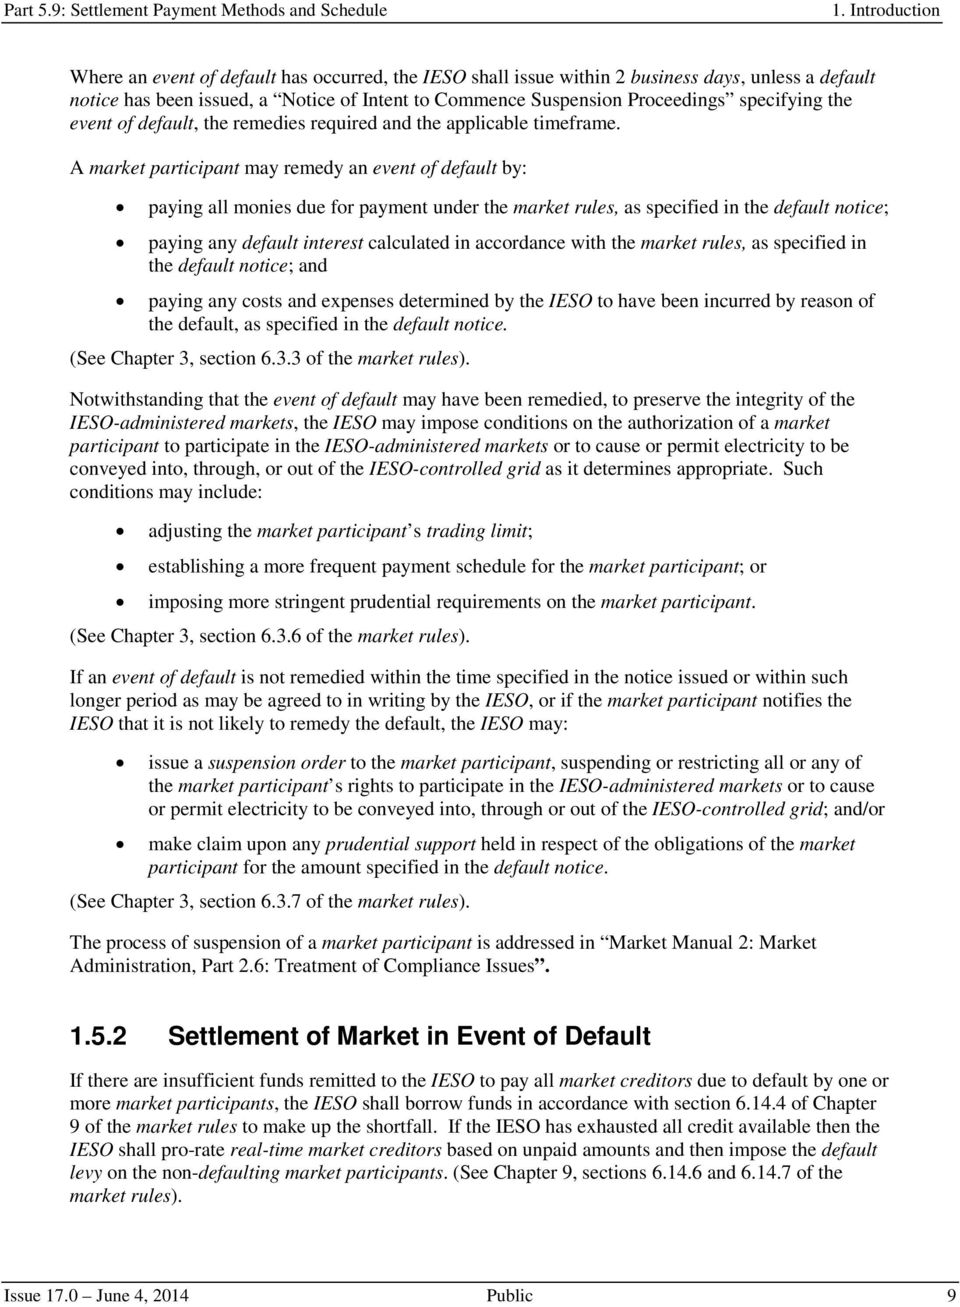 A market participant may remedy an event of default by: paying all monies due for payment under the market rules, as specified in the default notice; paying any default interest calculated in